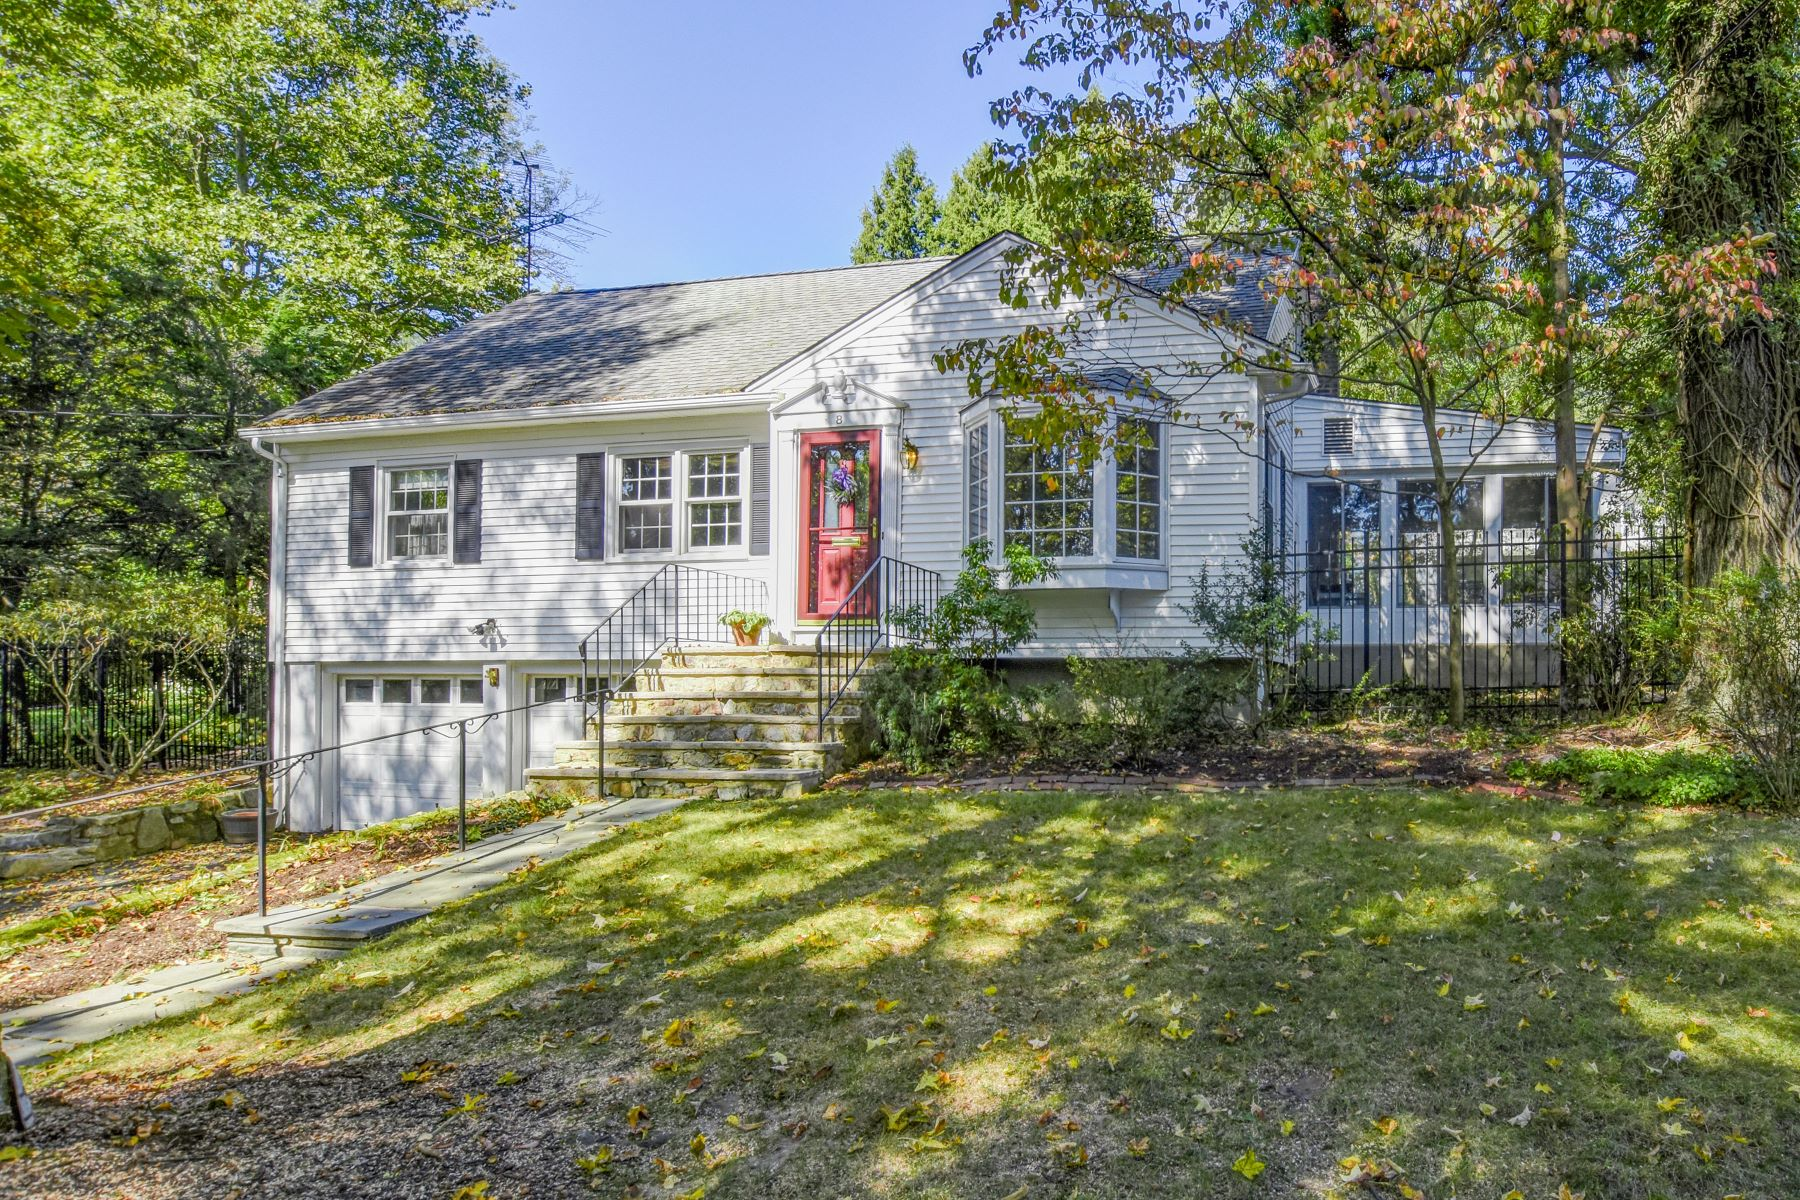 Single Family Homes for Sale at Lovely Cape Cod 8 Overlook Trail Morris Plains, New Jersey 07950 United States